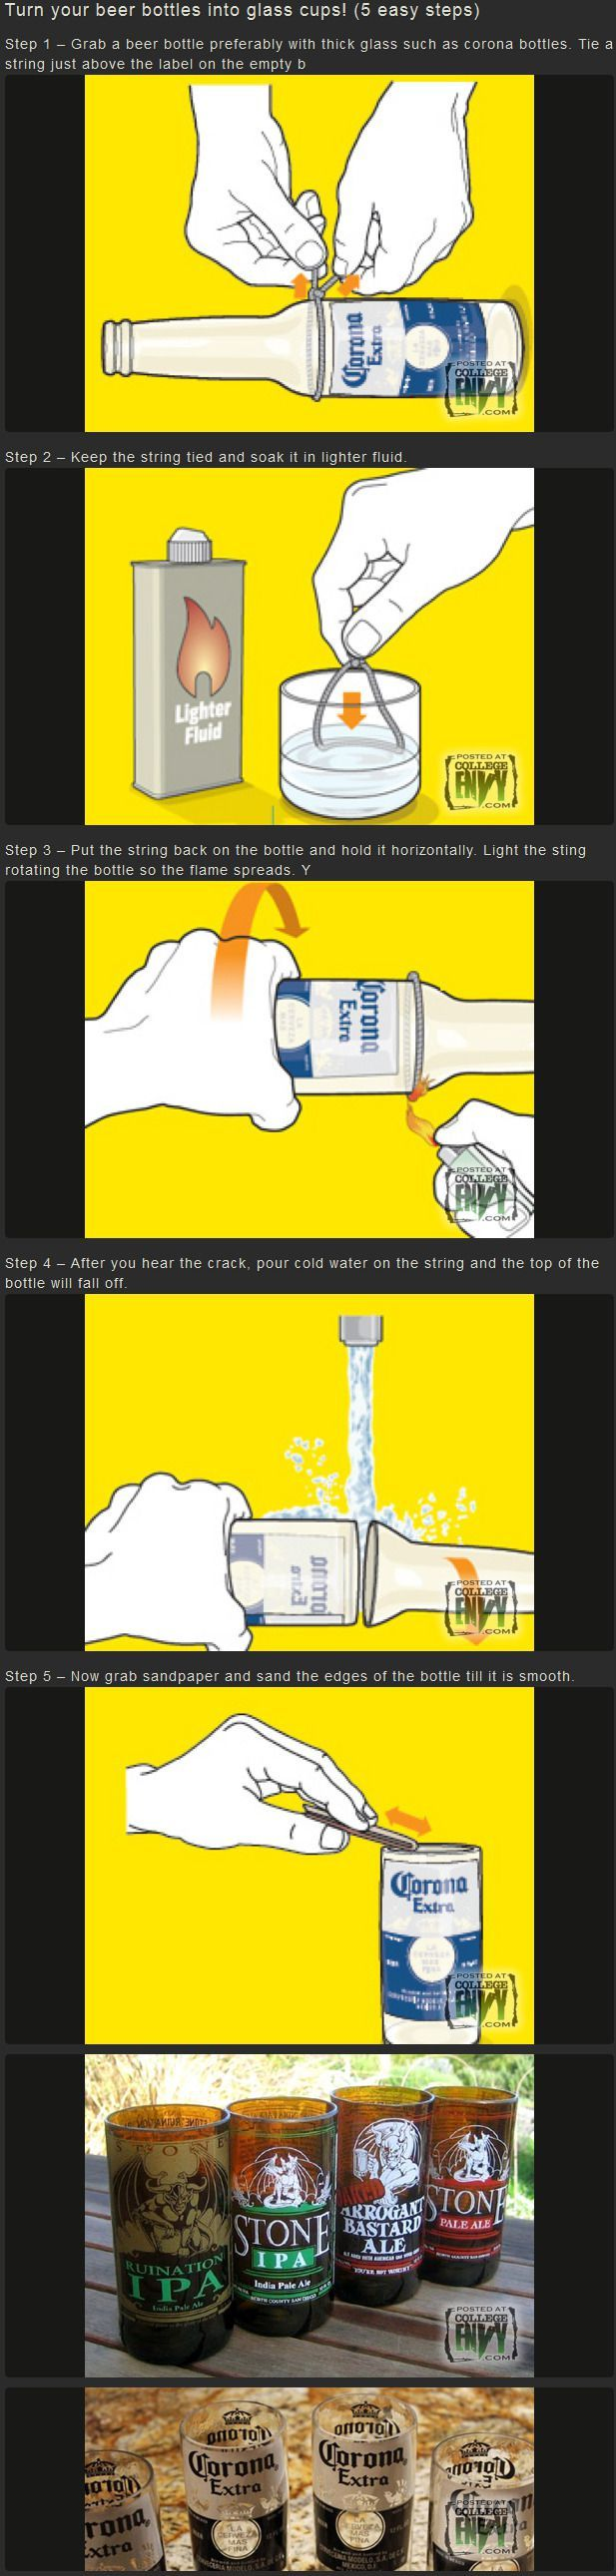 Turn you beer bottles into glass cups - http://limk.com/news/turn-you-beer-bottles-into-glass-cups-101357027/